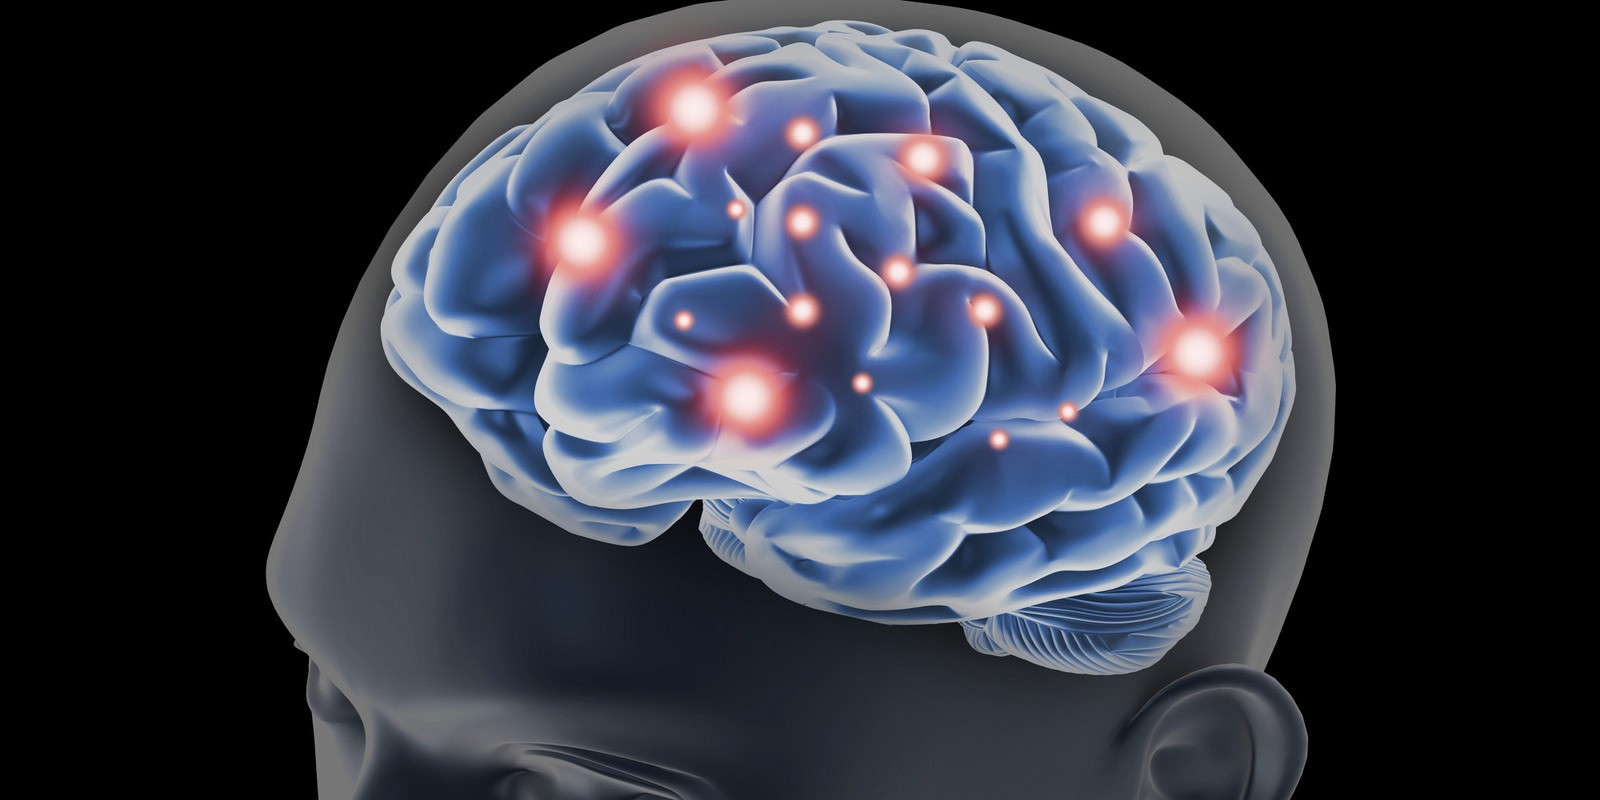 An illustration of the human brain. Illustration by Getty.